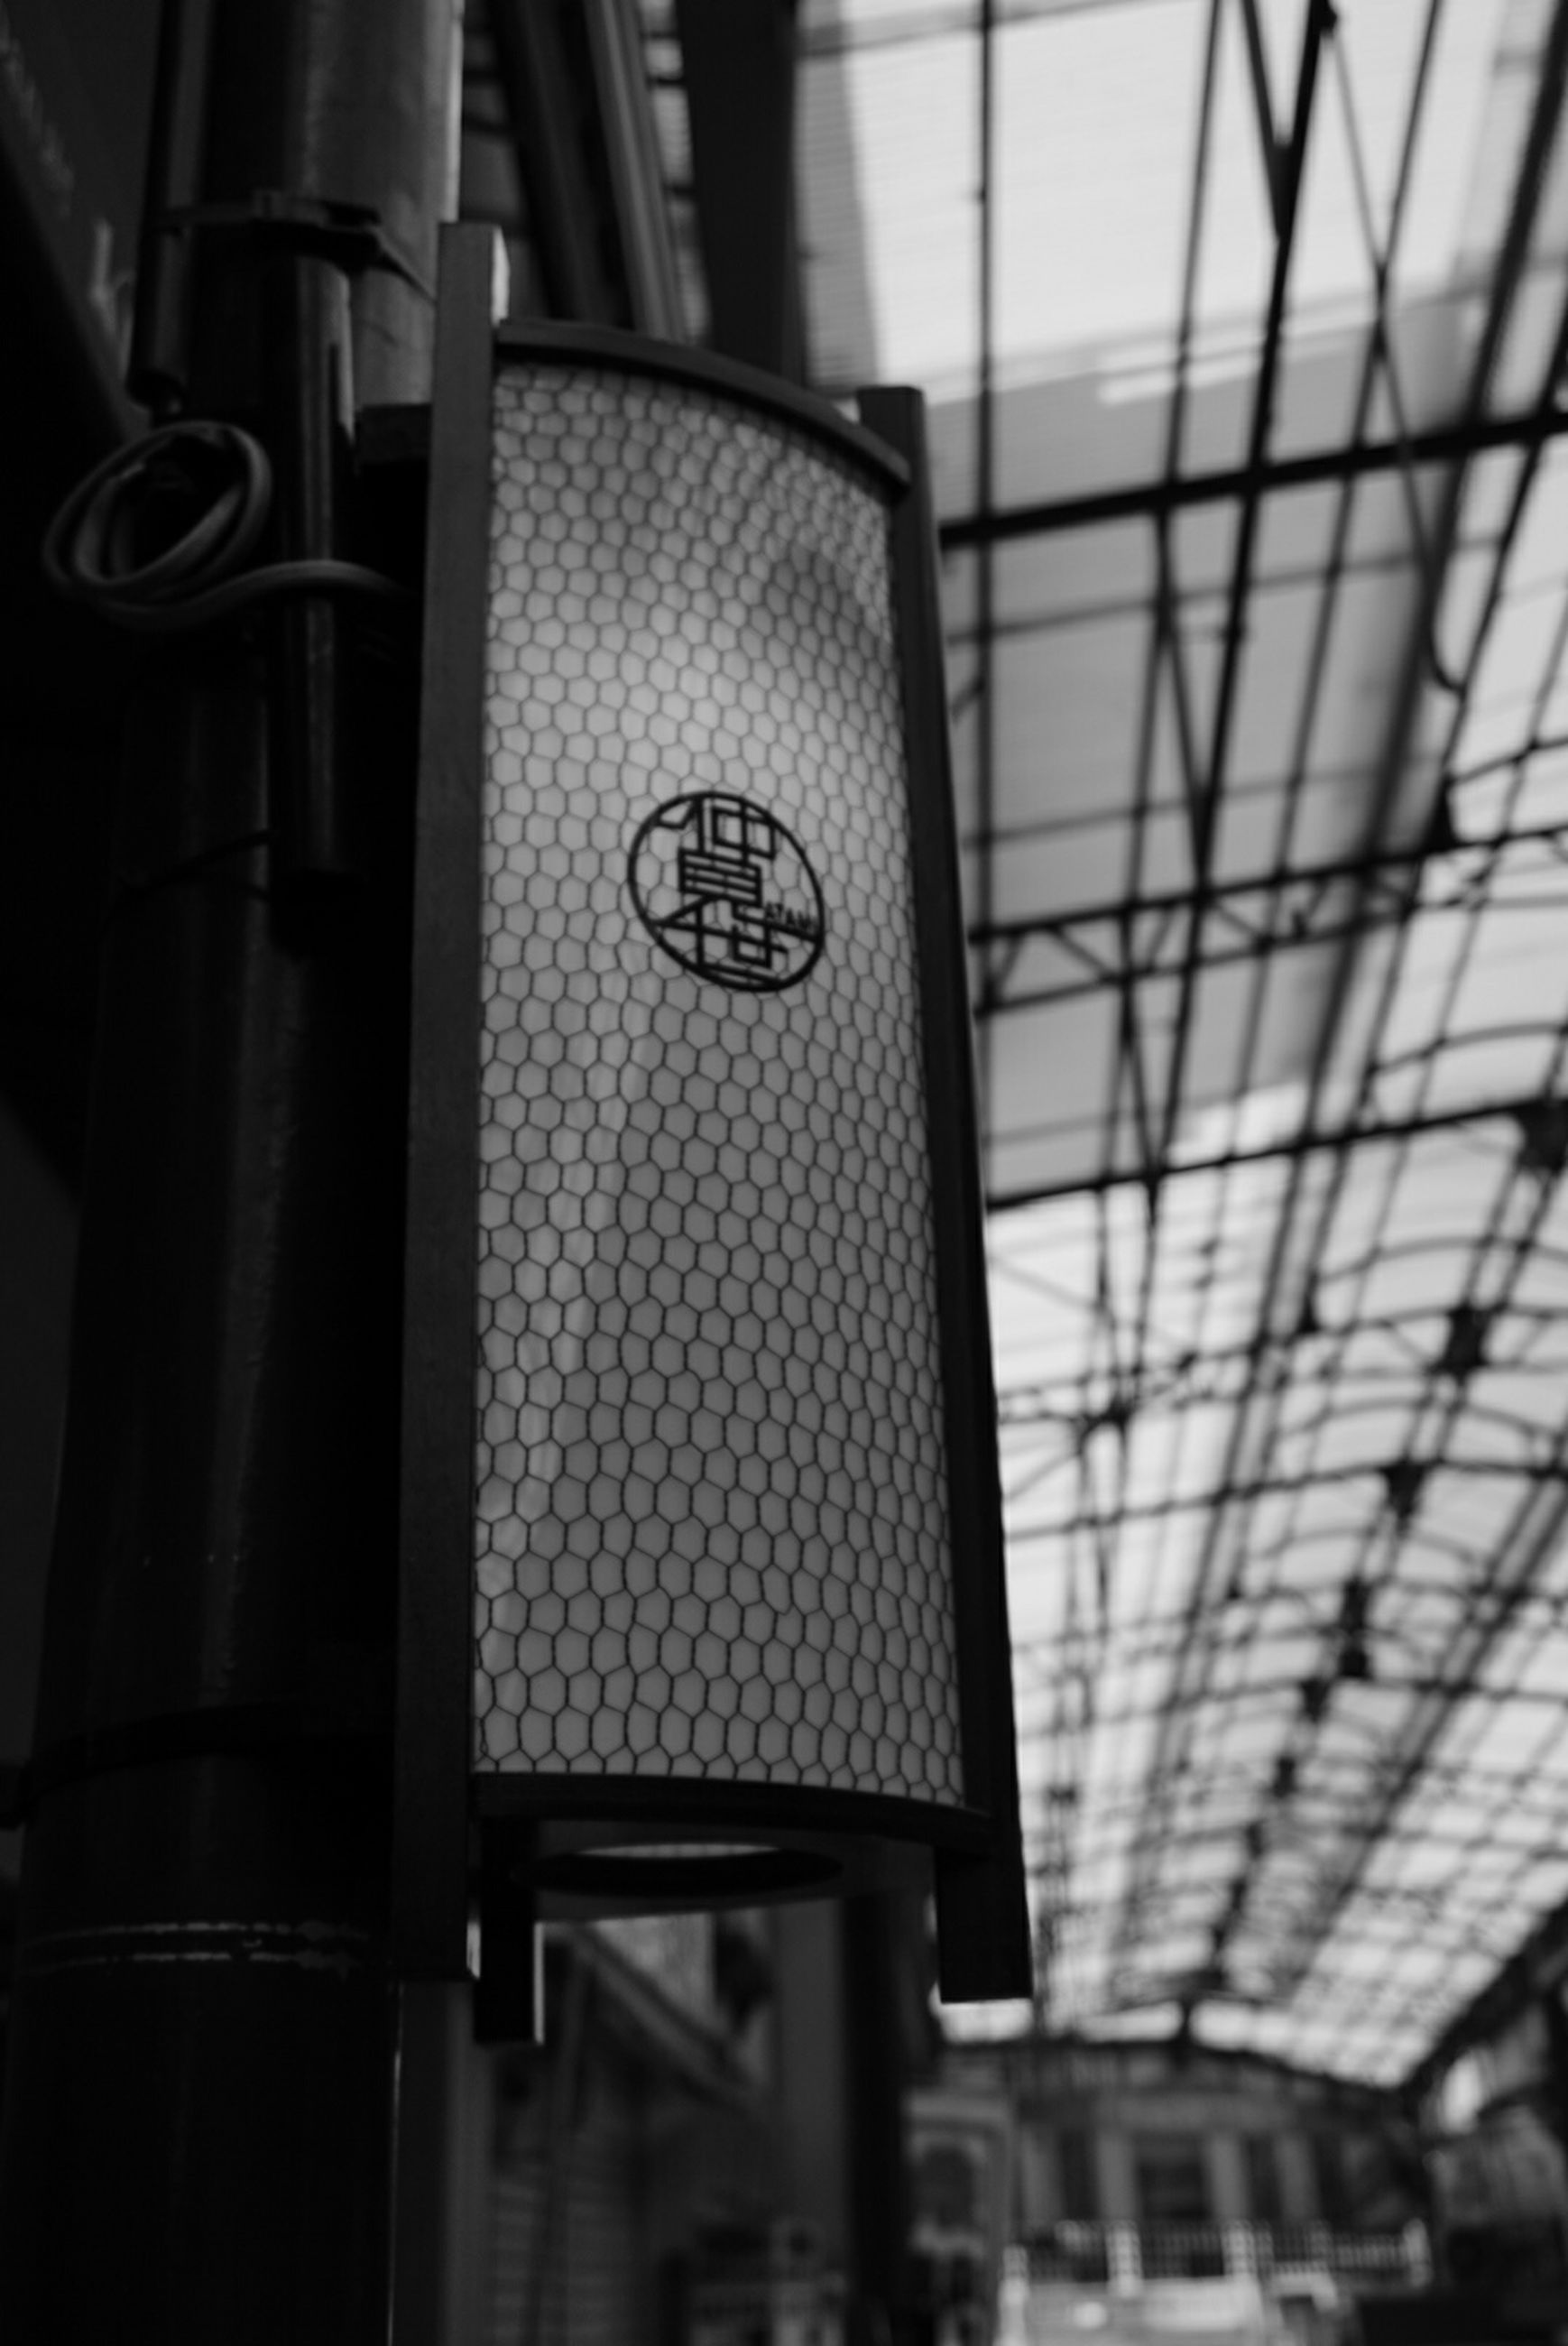 indoors, metal, technology, low angle view, metallic, architecture, built structure, industry, no people, close-up, factory, modern, rail transportation, in a row, public transportation, connection, day, lighting equipment, convenience, selective focus